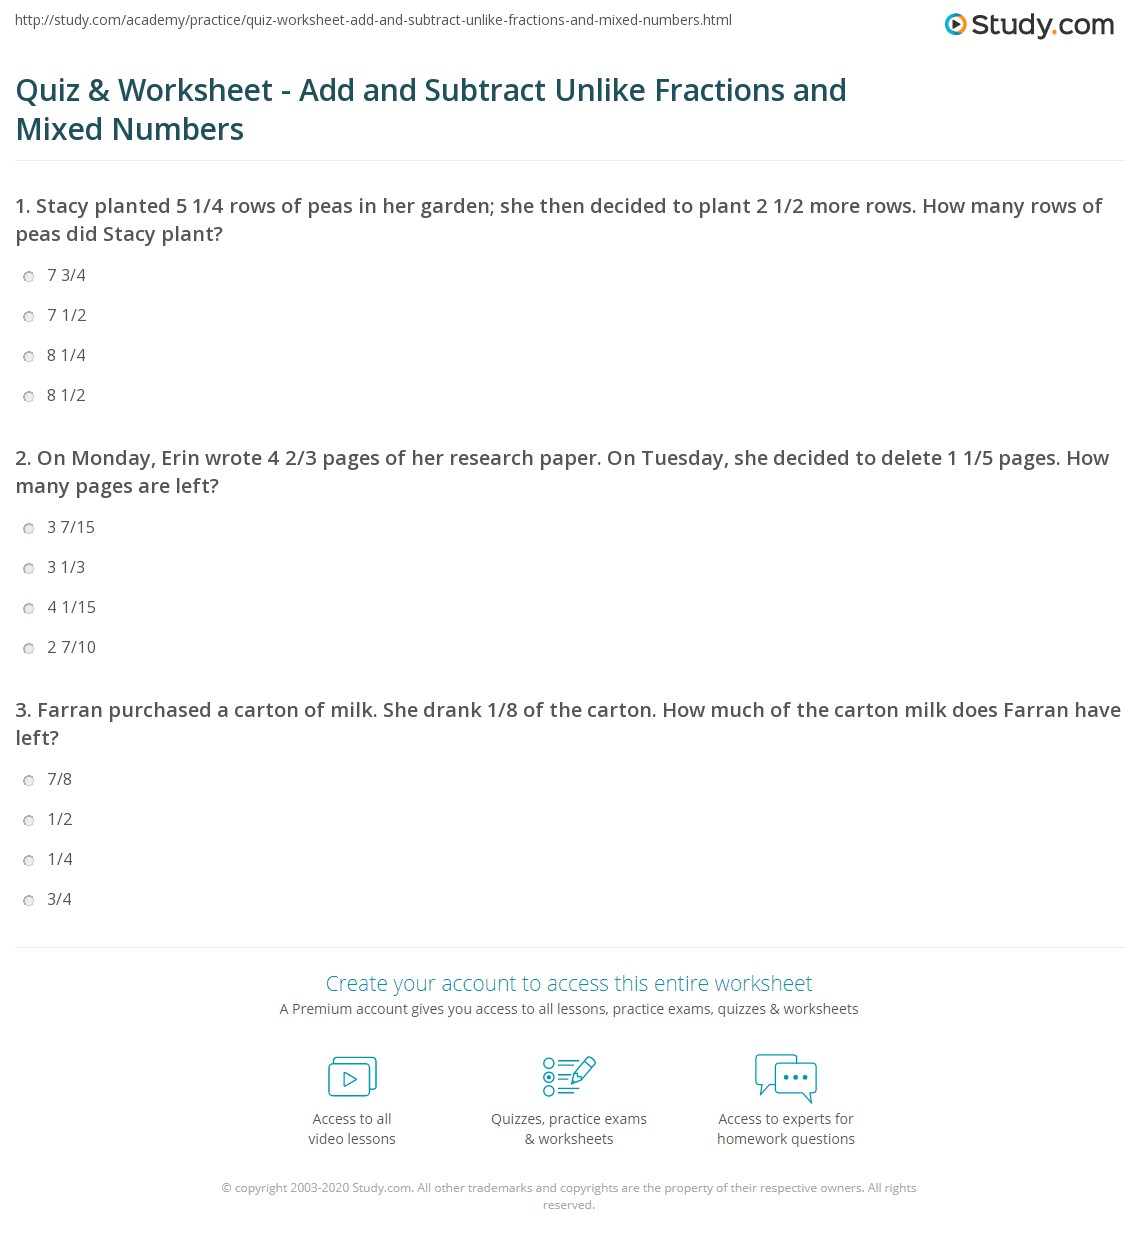 quiz  worksheet  add and subtract unlike fractions and mixed  print how to add and subtract unlike fractions and mixed numbers worksheet